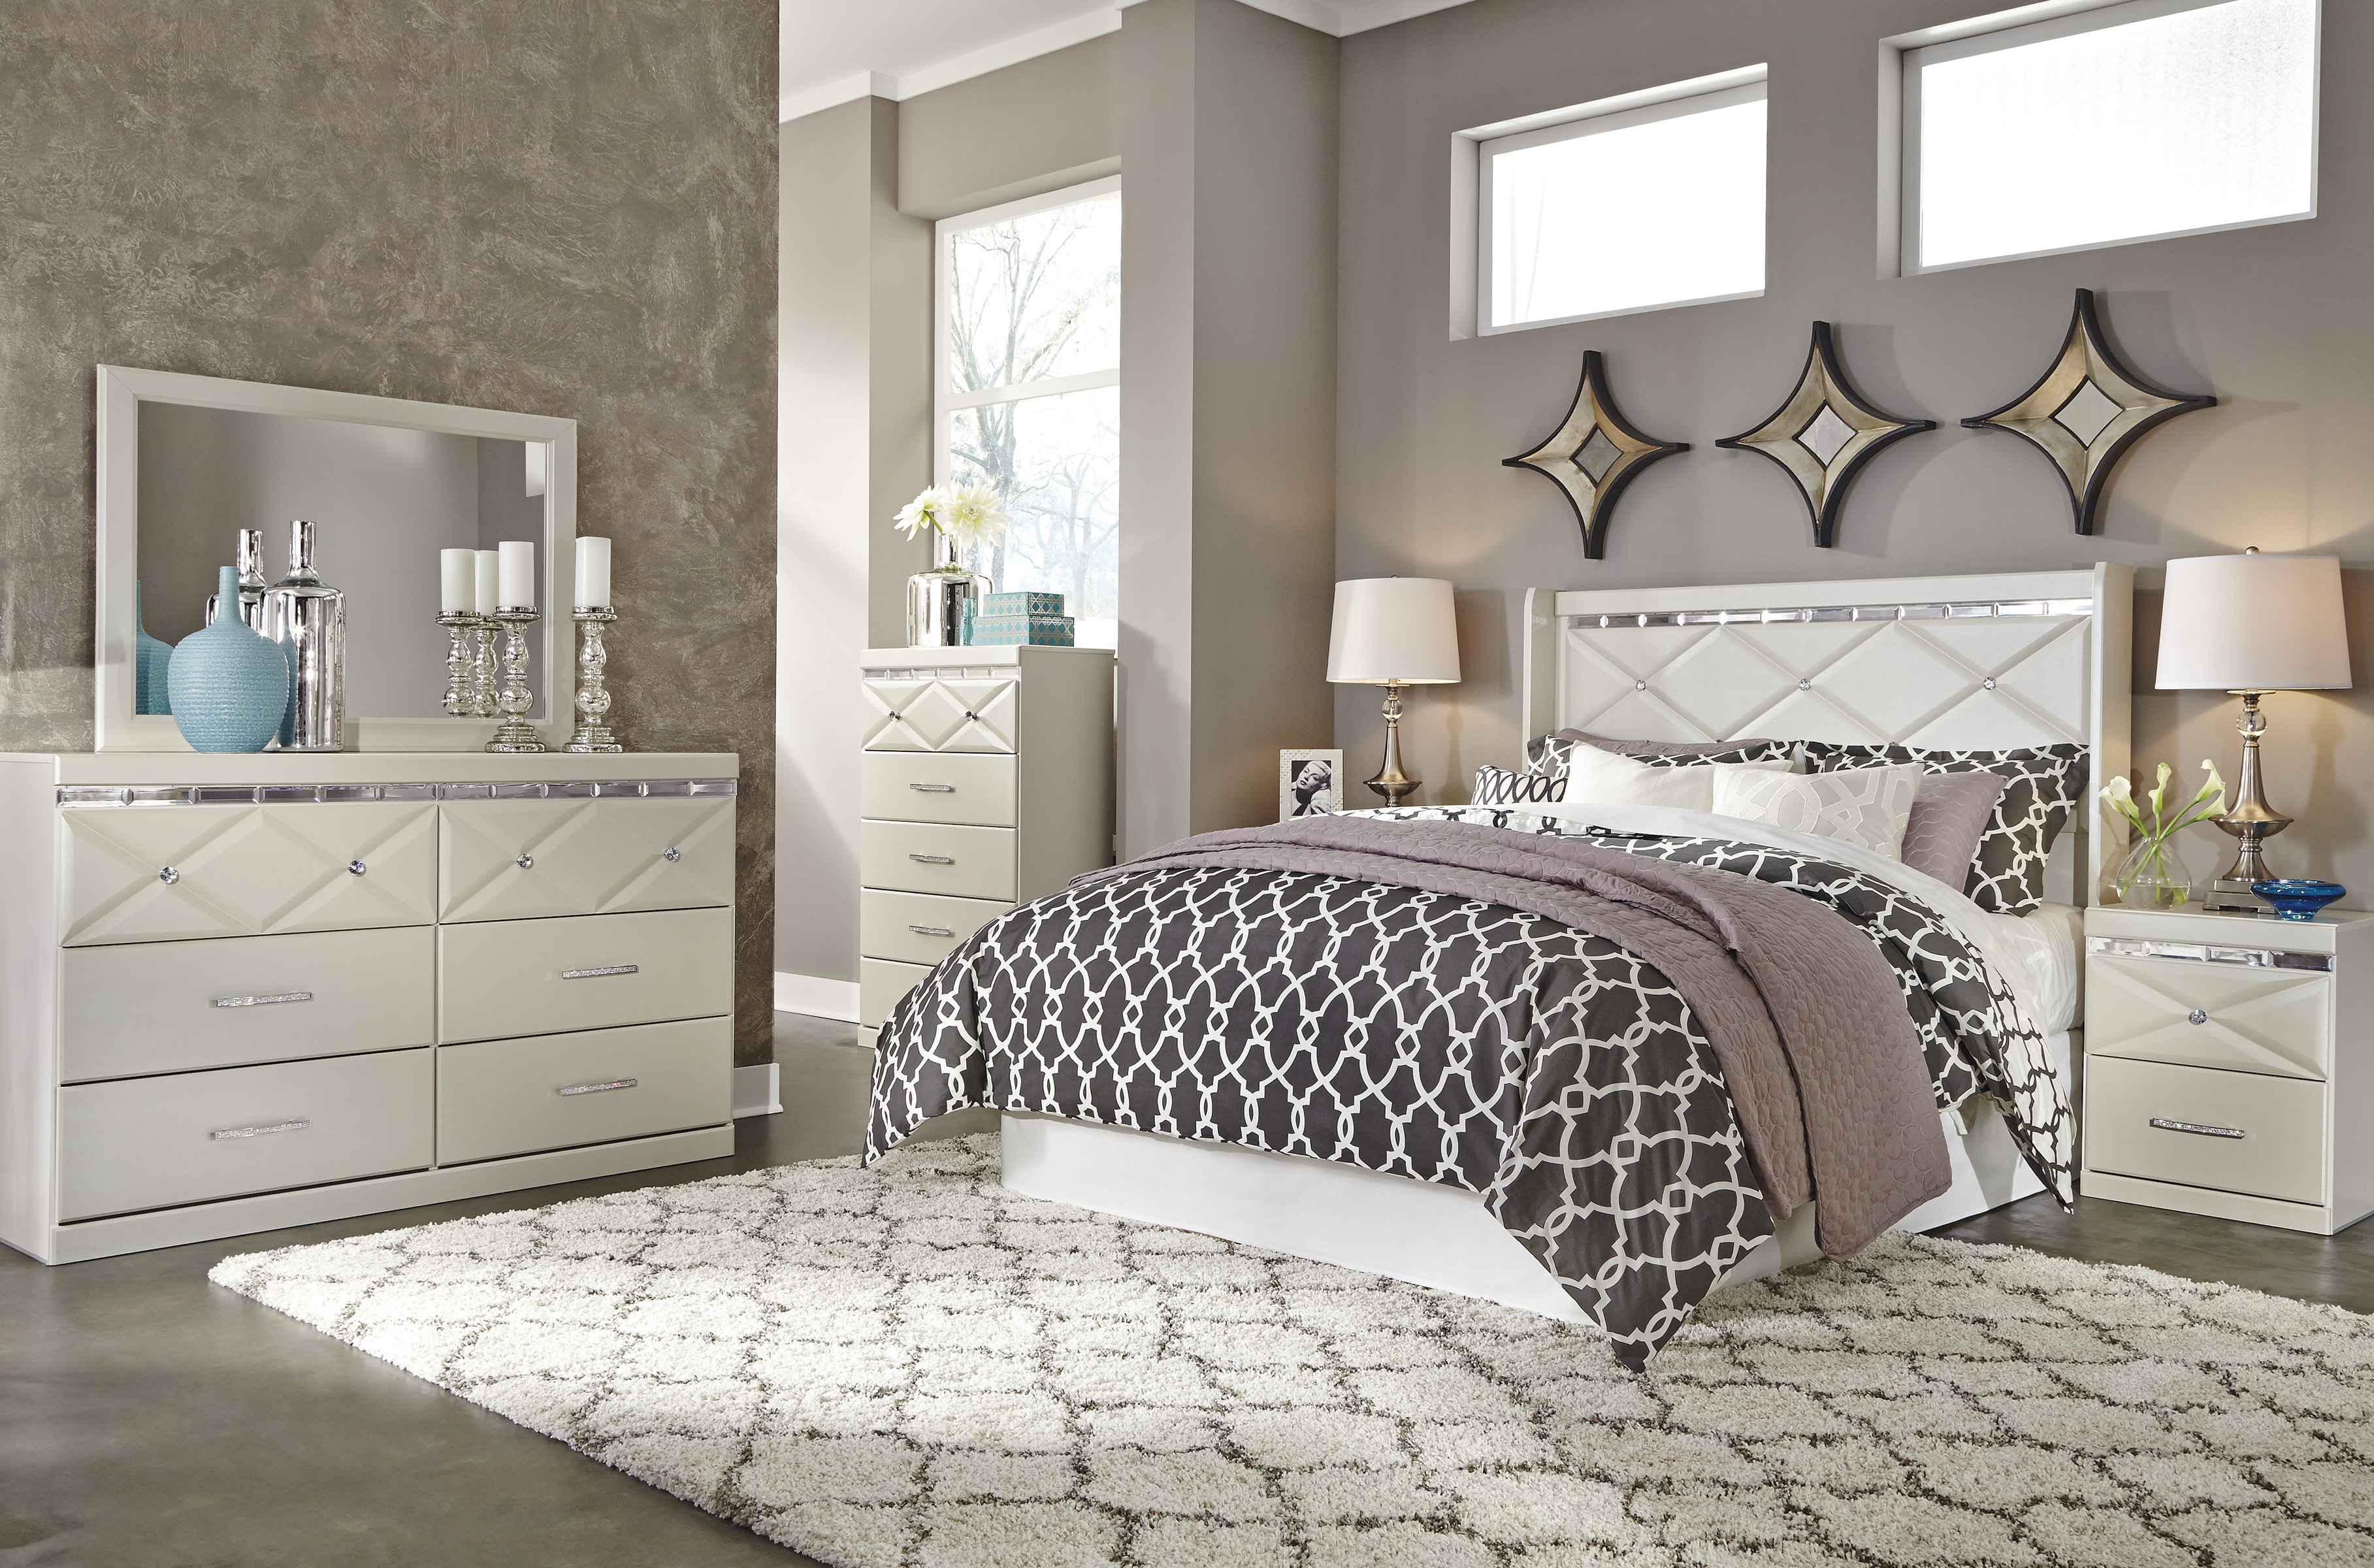 B-351 Dreamur Bedroom Set